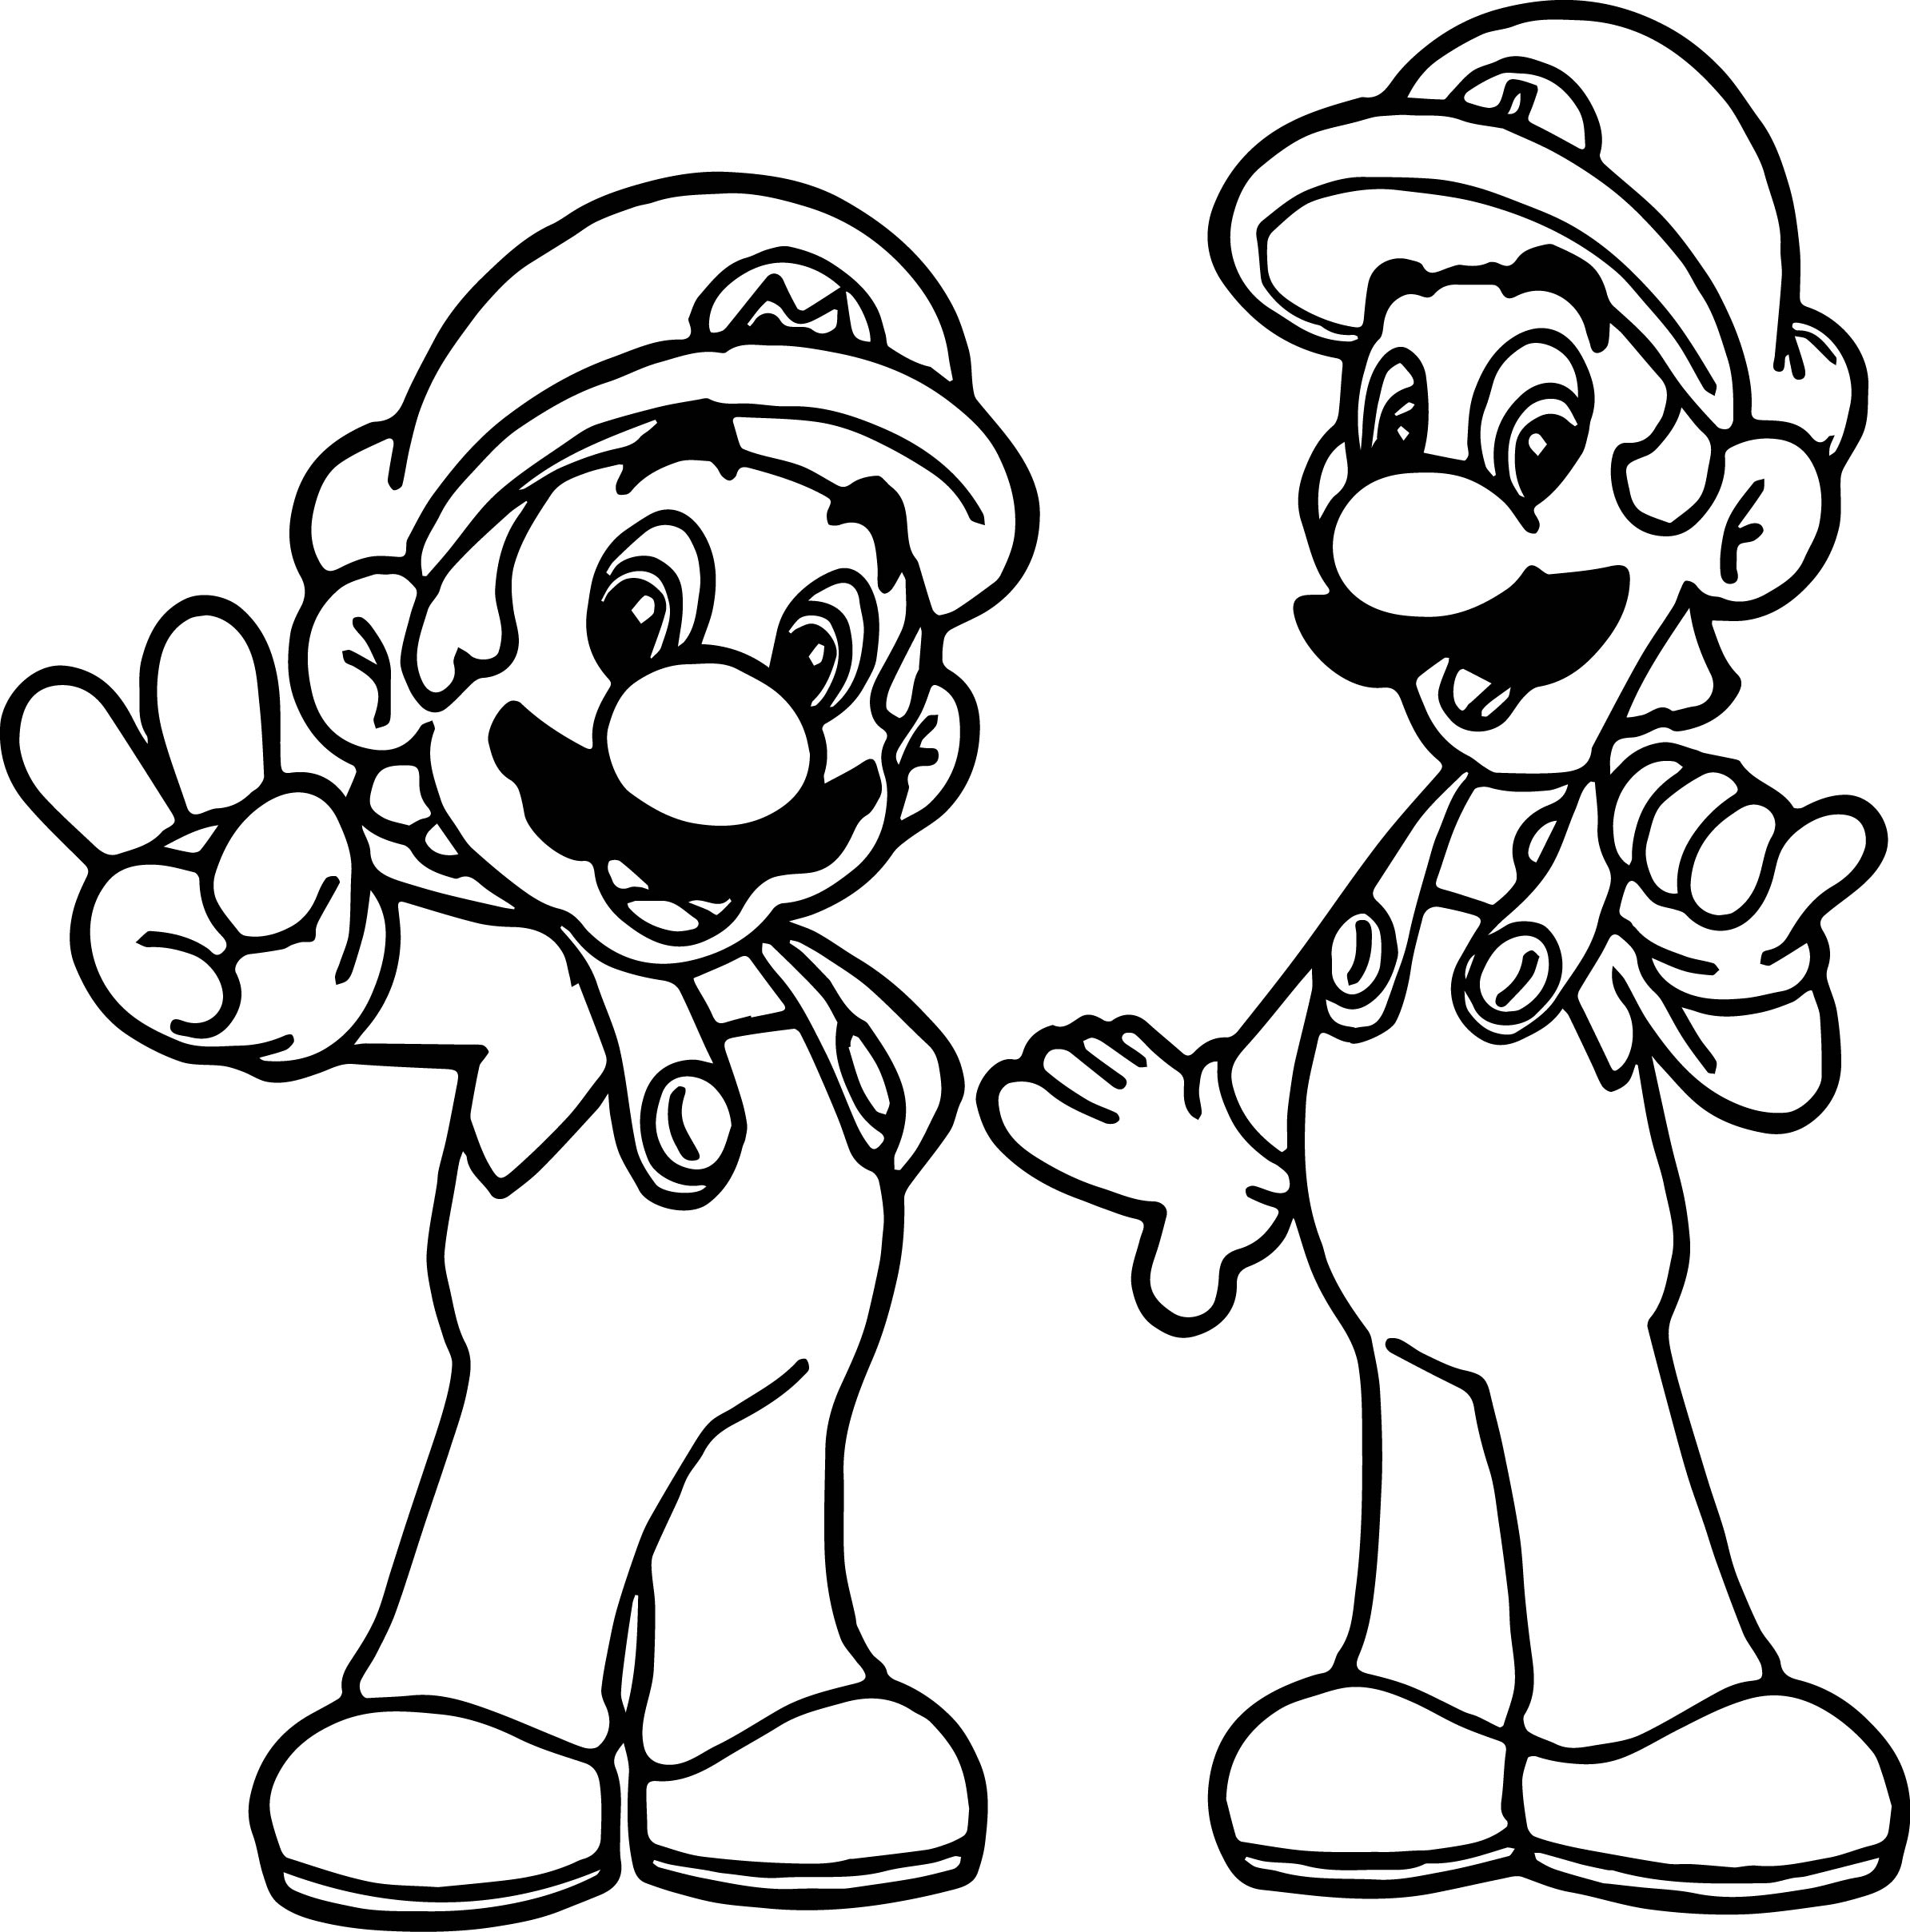 mario color pages coloring pages mario coloring pages free and printable color mario pages